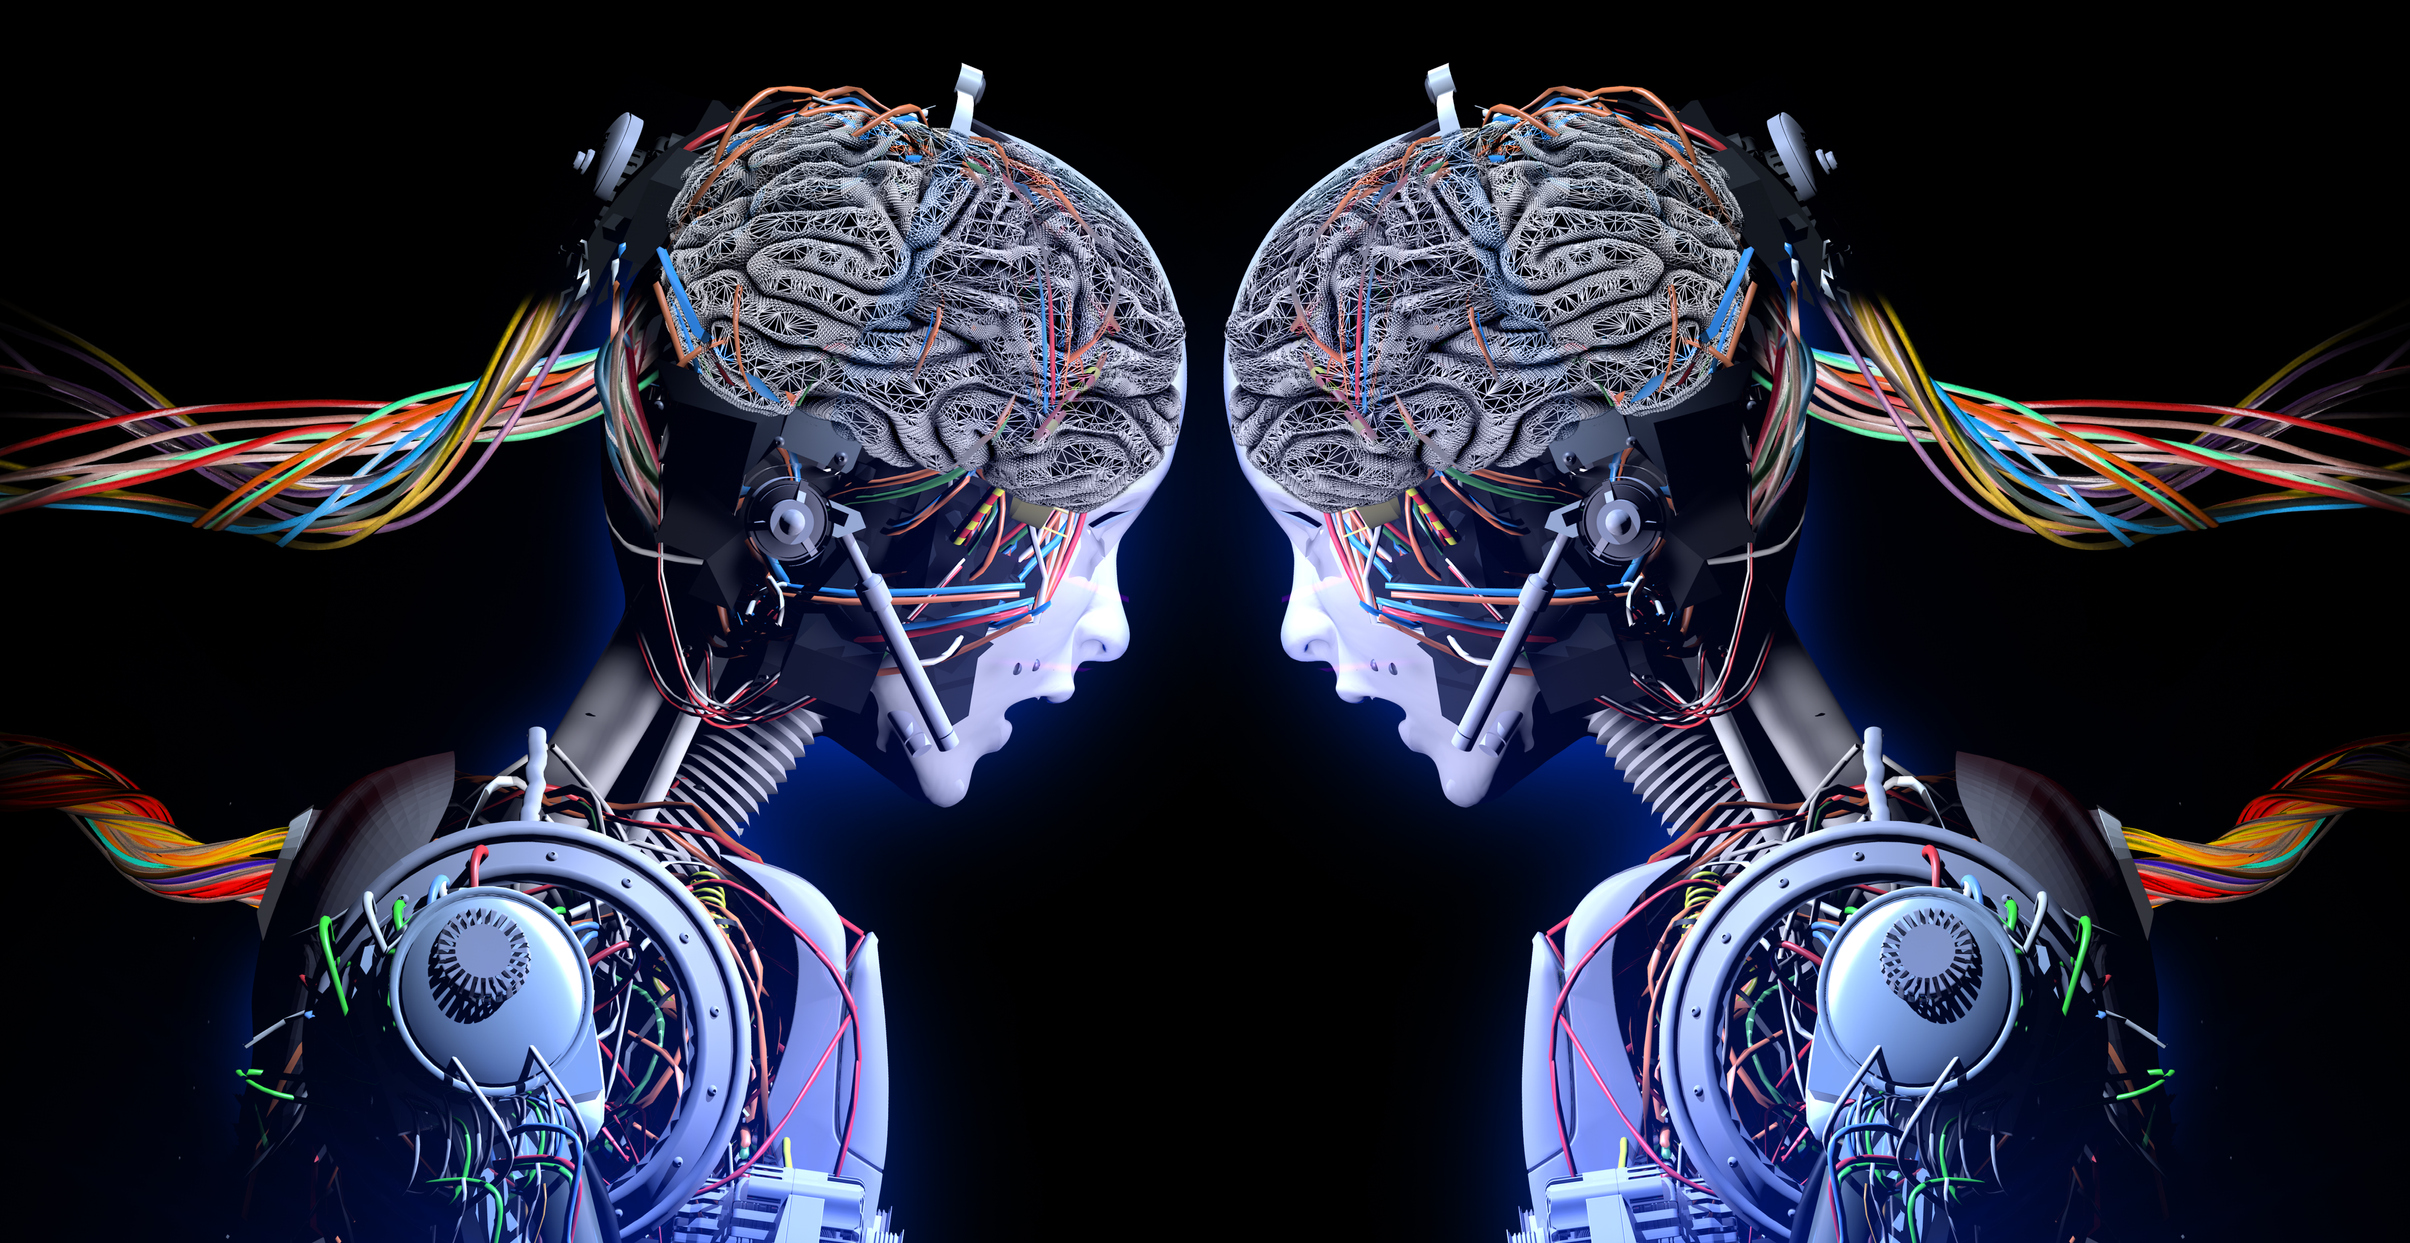 Robots with brains looking at each other